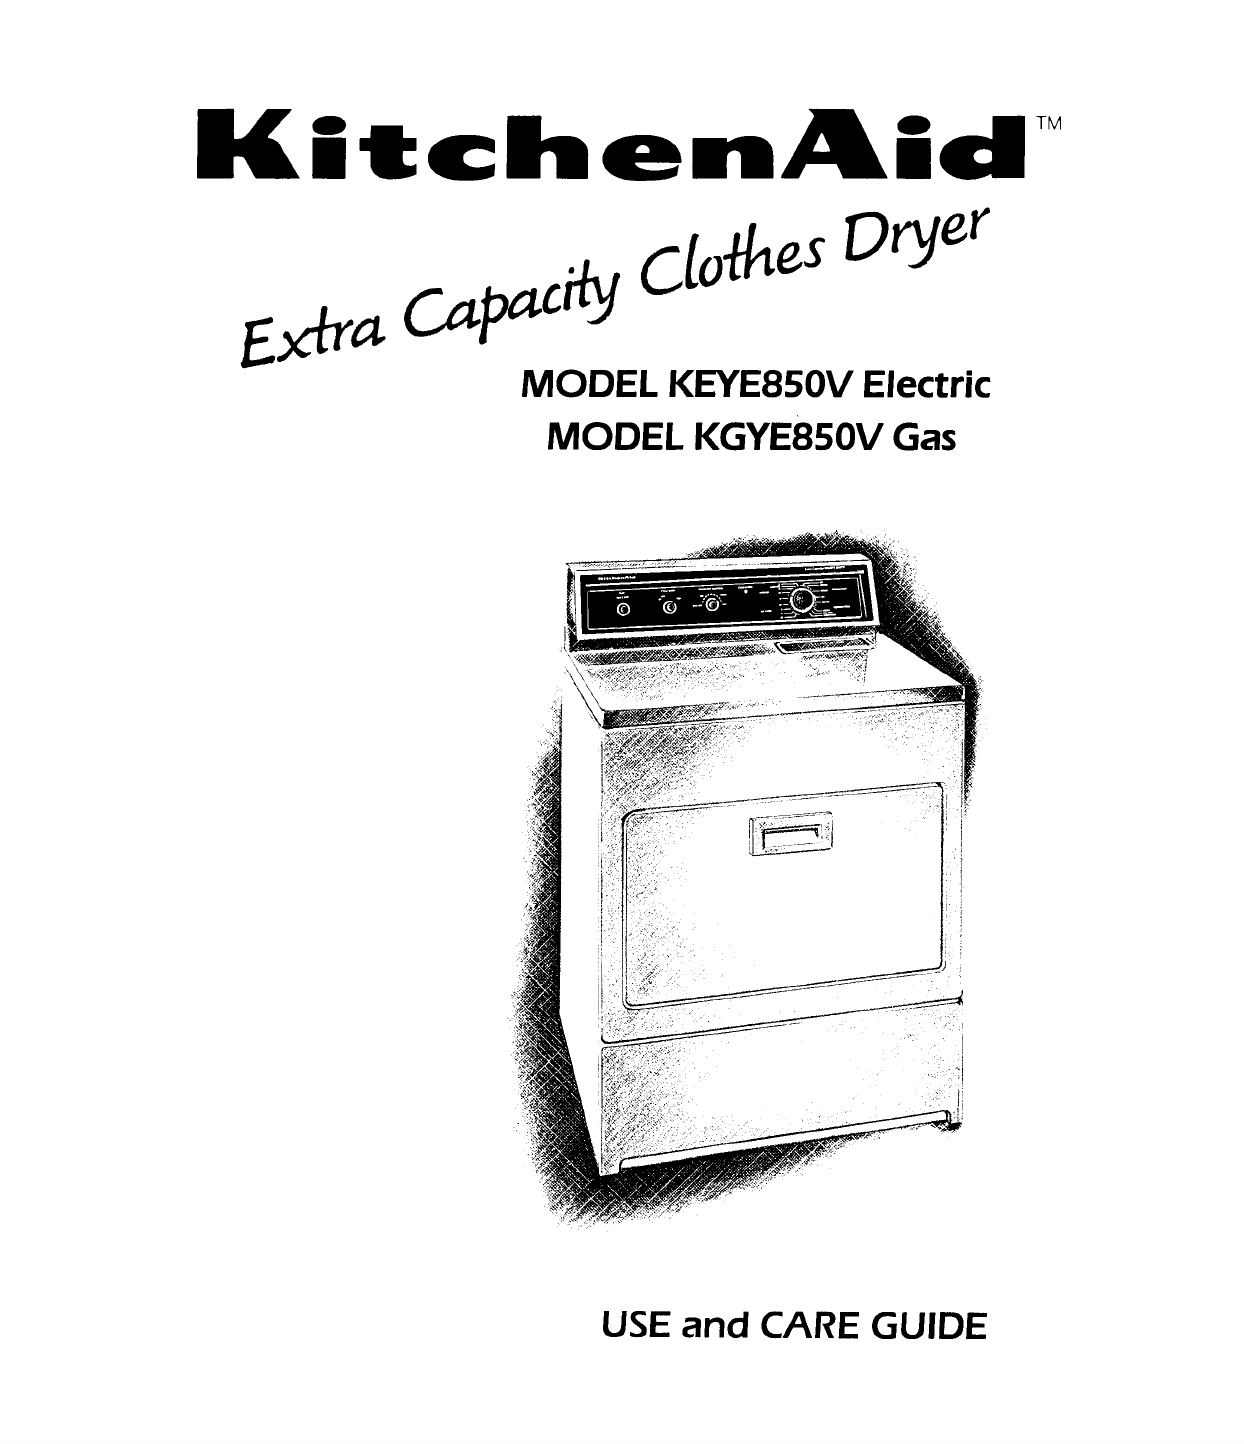 KitchenAid Clothes Dryer KEYE850V Electric manual